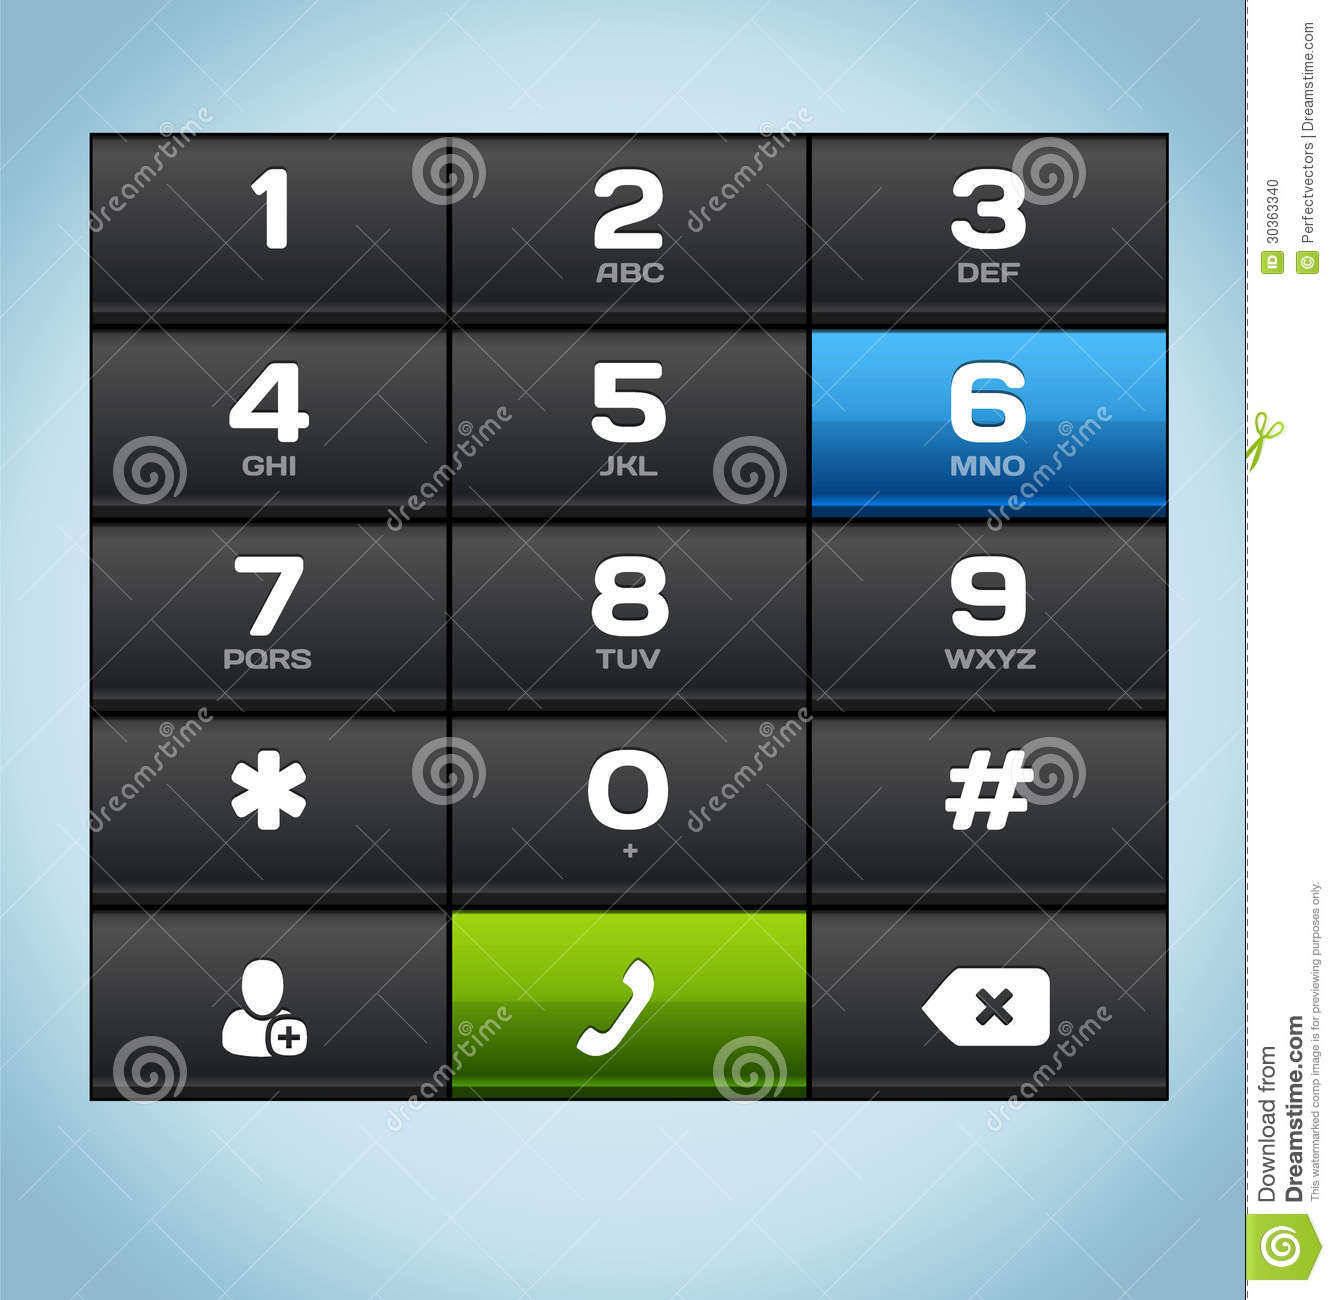 Black Number Phone Keypad stock vector. Illustration of characters - 30363340